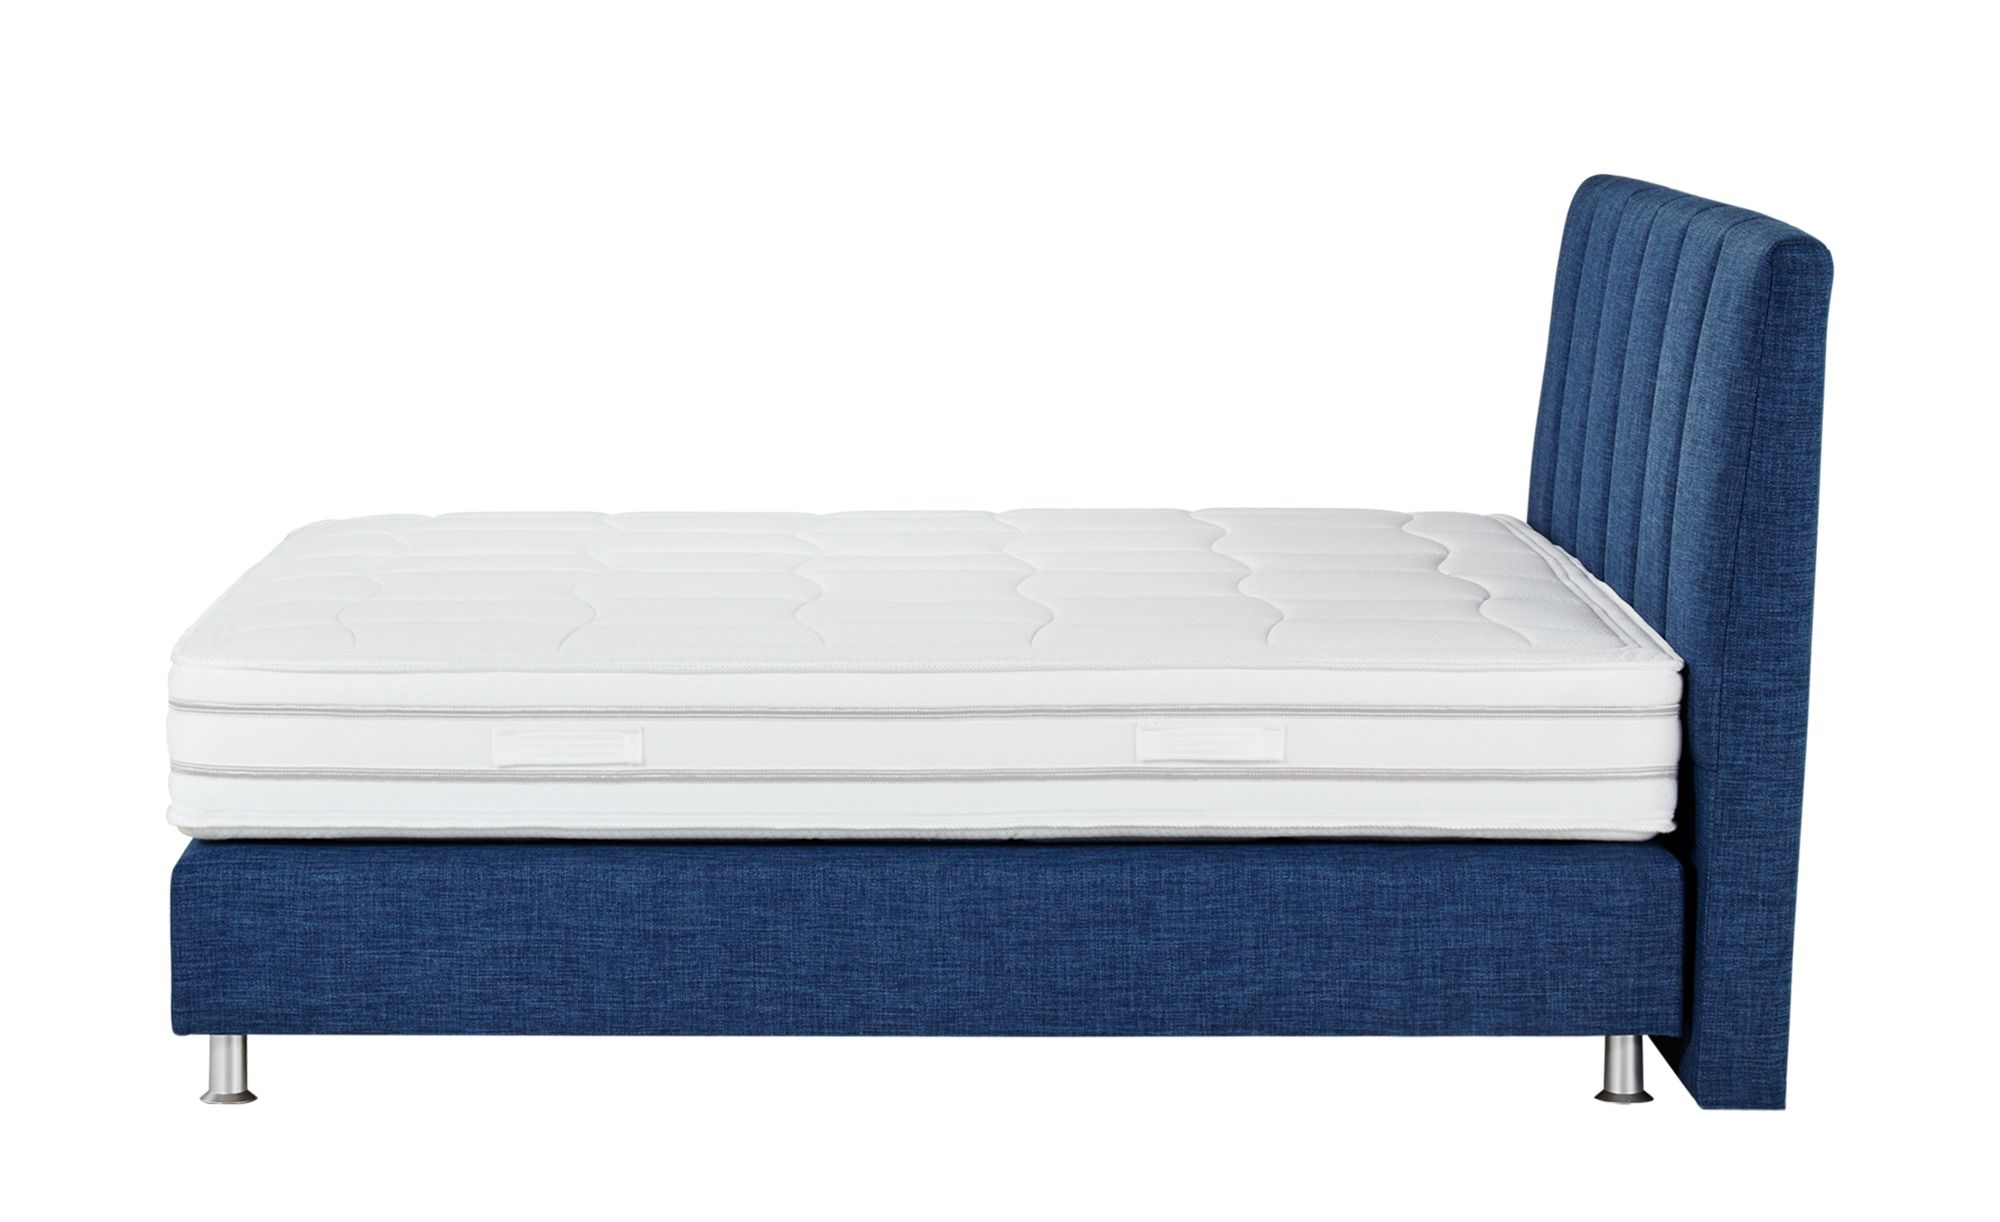 Boxspringbett 160x200 Boxspringbett 160x200 Blau Aero In 2019 Products Mattress In